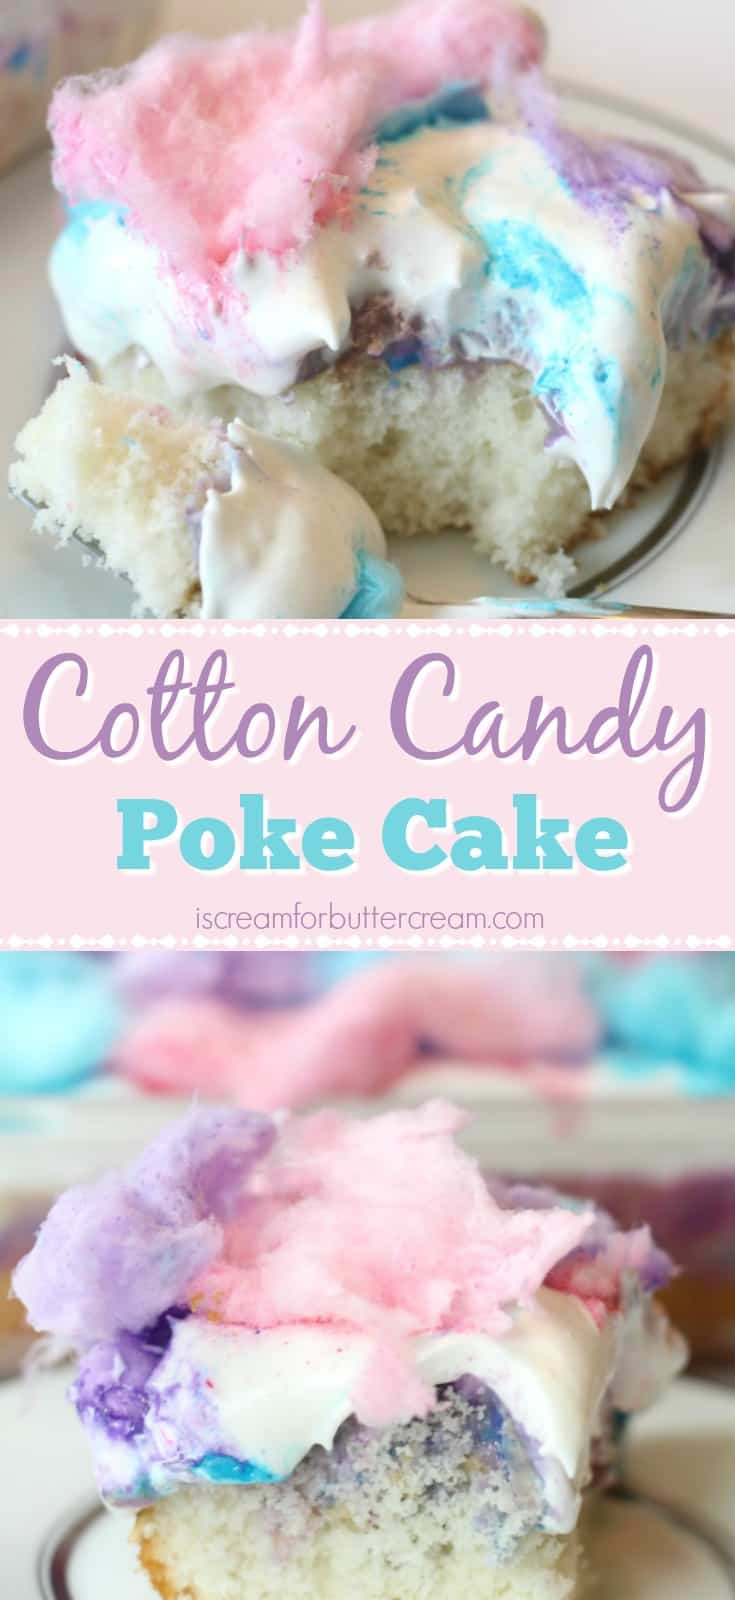 Cotton Candy Poke Cake Pinterest Graphic